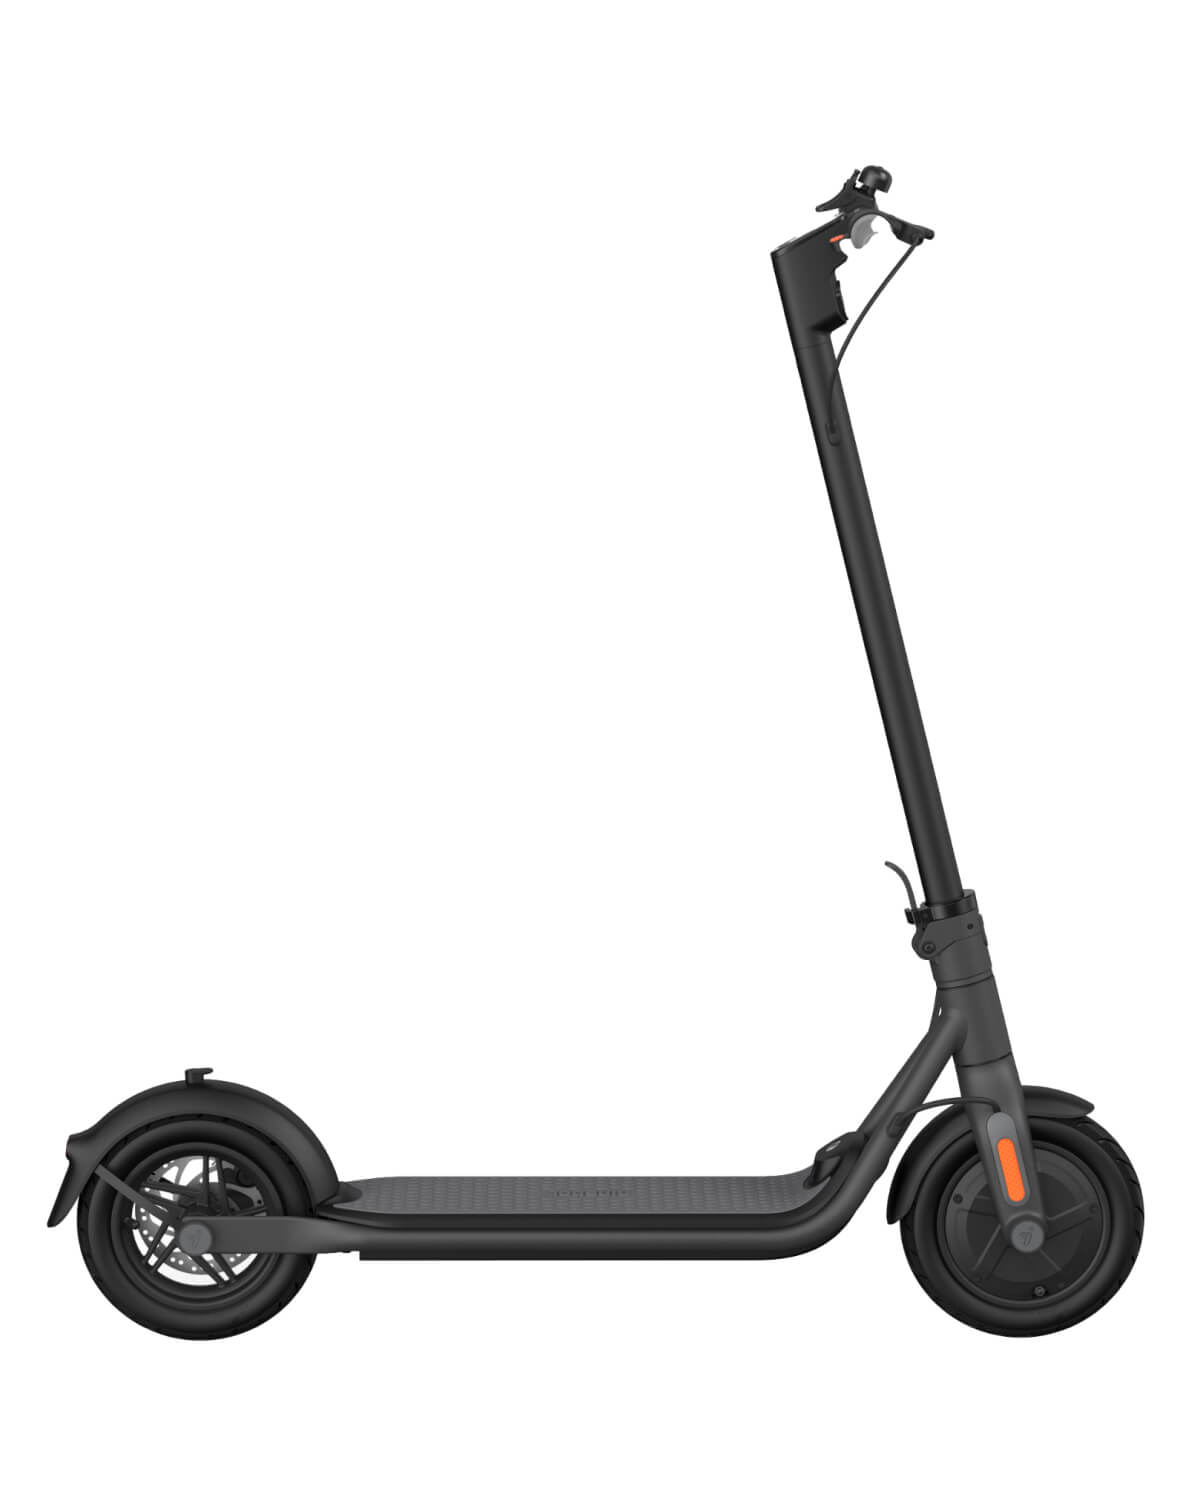 Ninebot F20A scooter riding experience